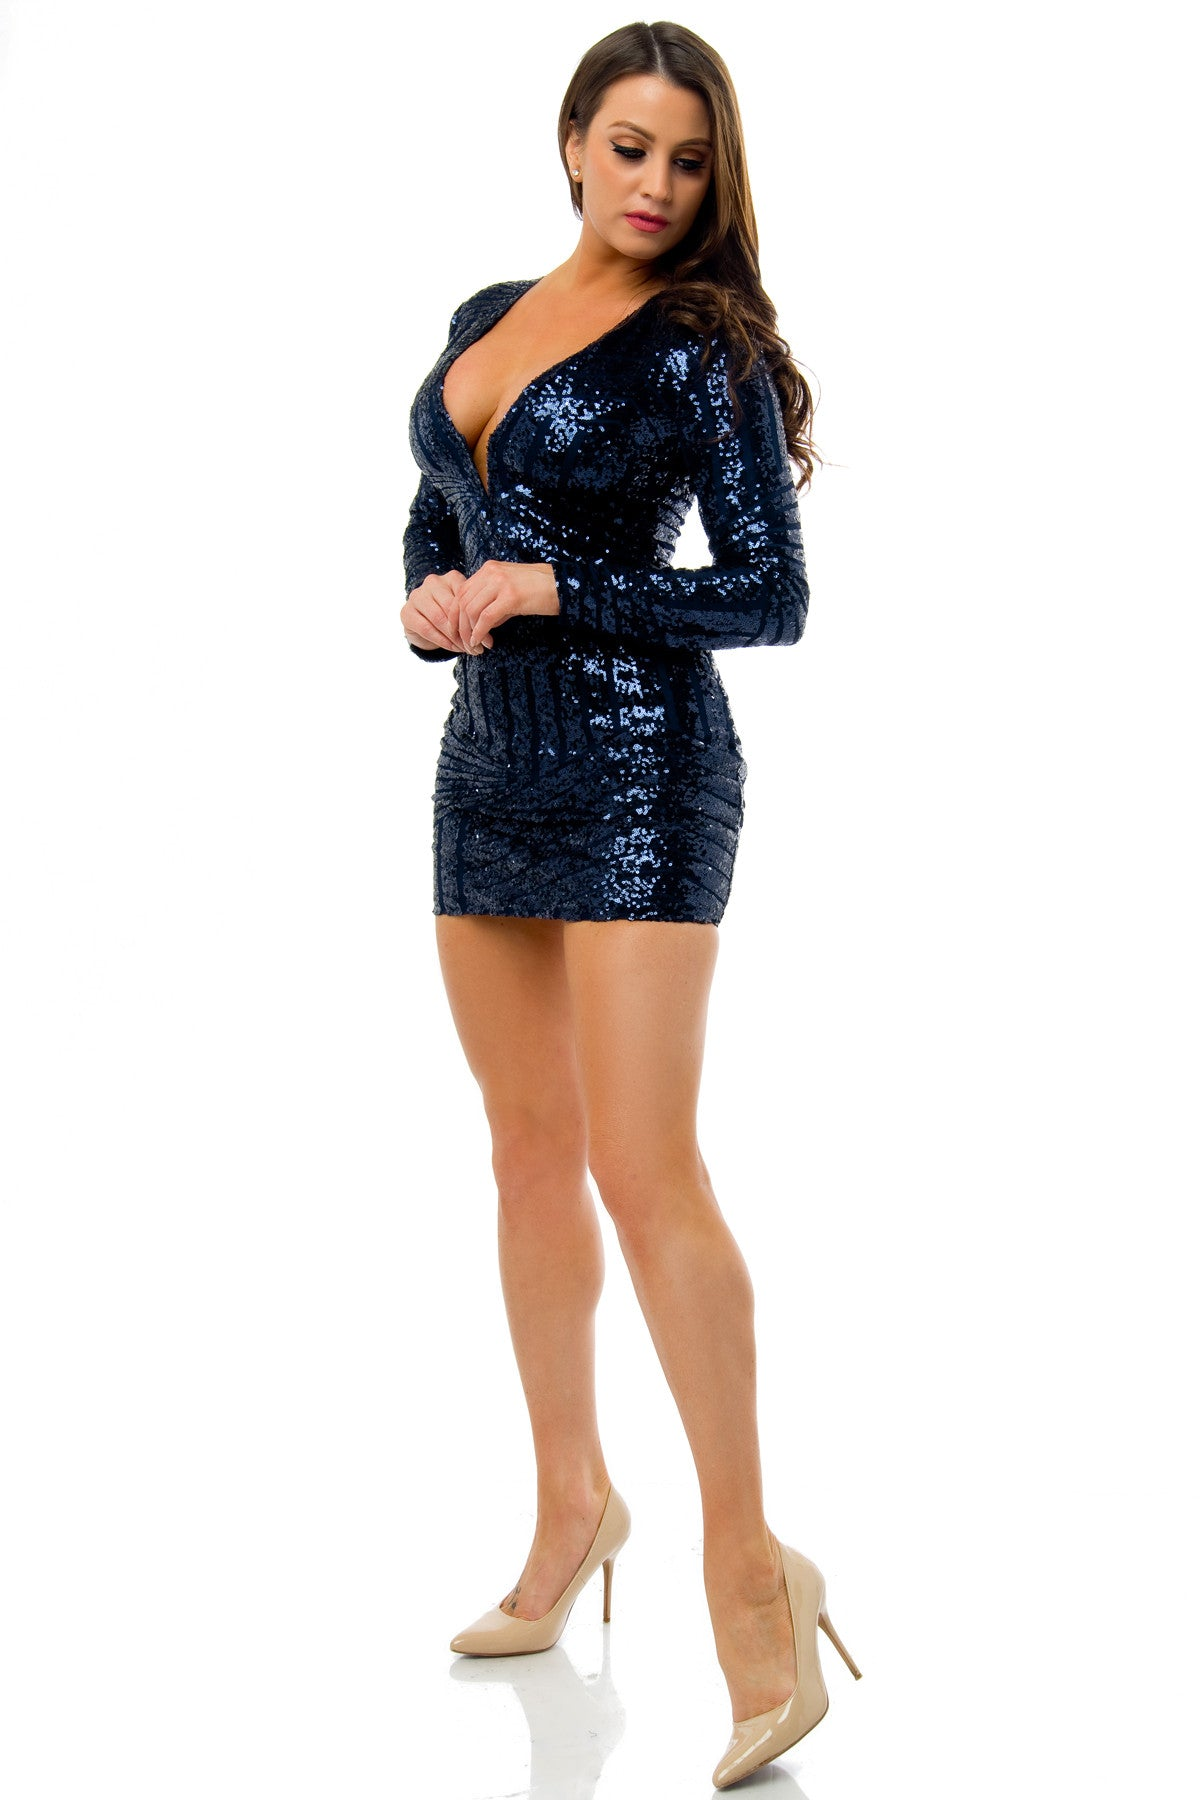 Mia Midnight Blue Sequin Dress - Fashion Effect Store  - 3